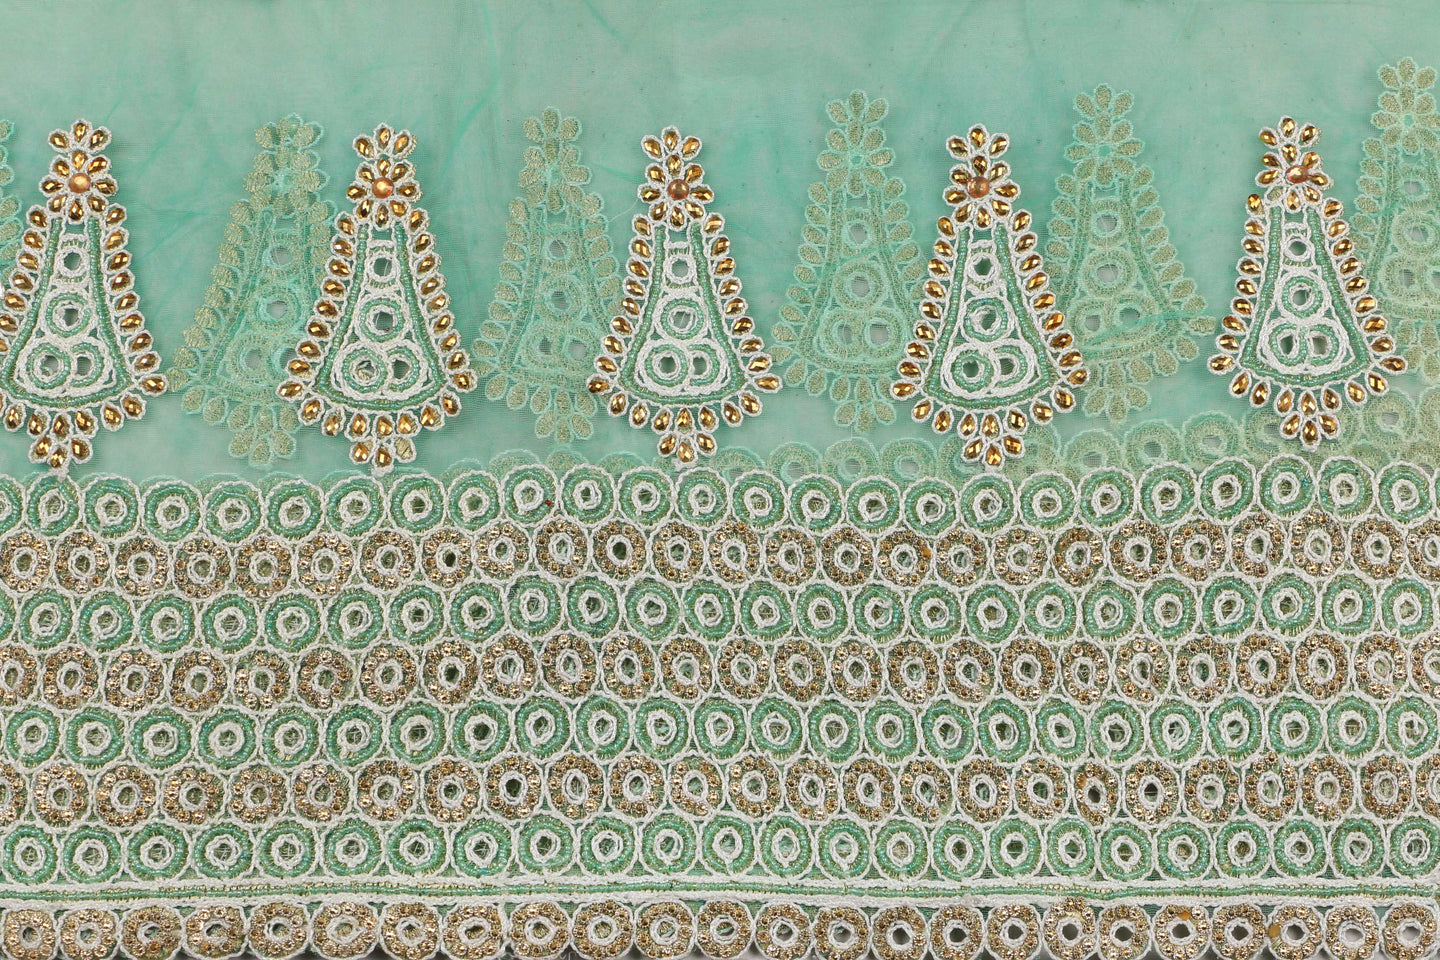 Hand Embroidered Blouse Design # 3368 - Aqua Green - With Blouse - 1.7 Yards